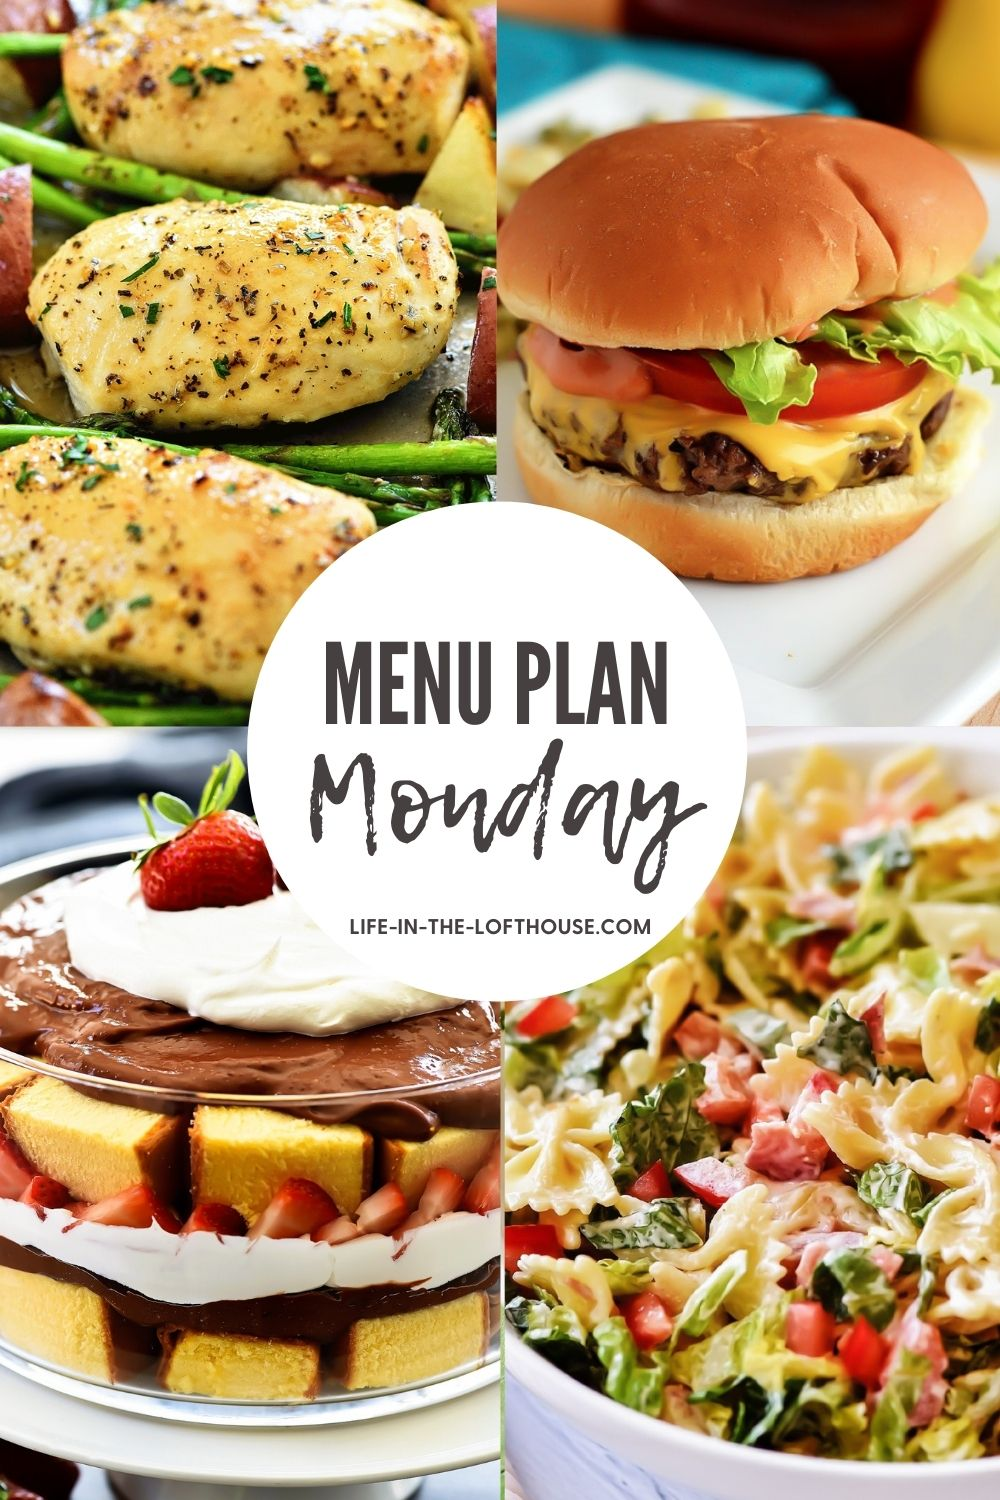 Menu Plan Monday is an easy dinner menu filled with six dinner recipes and one dessert. Life-in-the-Lofthouse.com